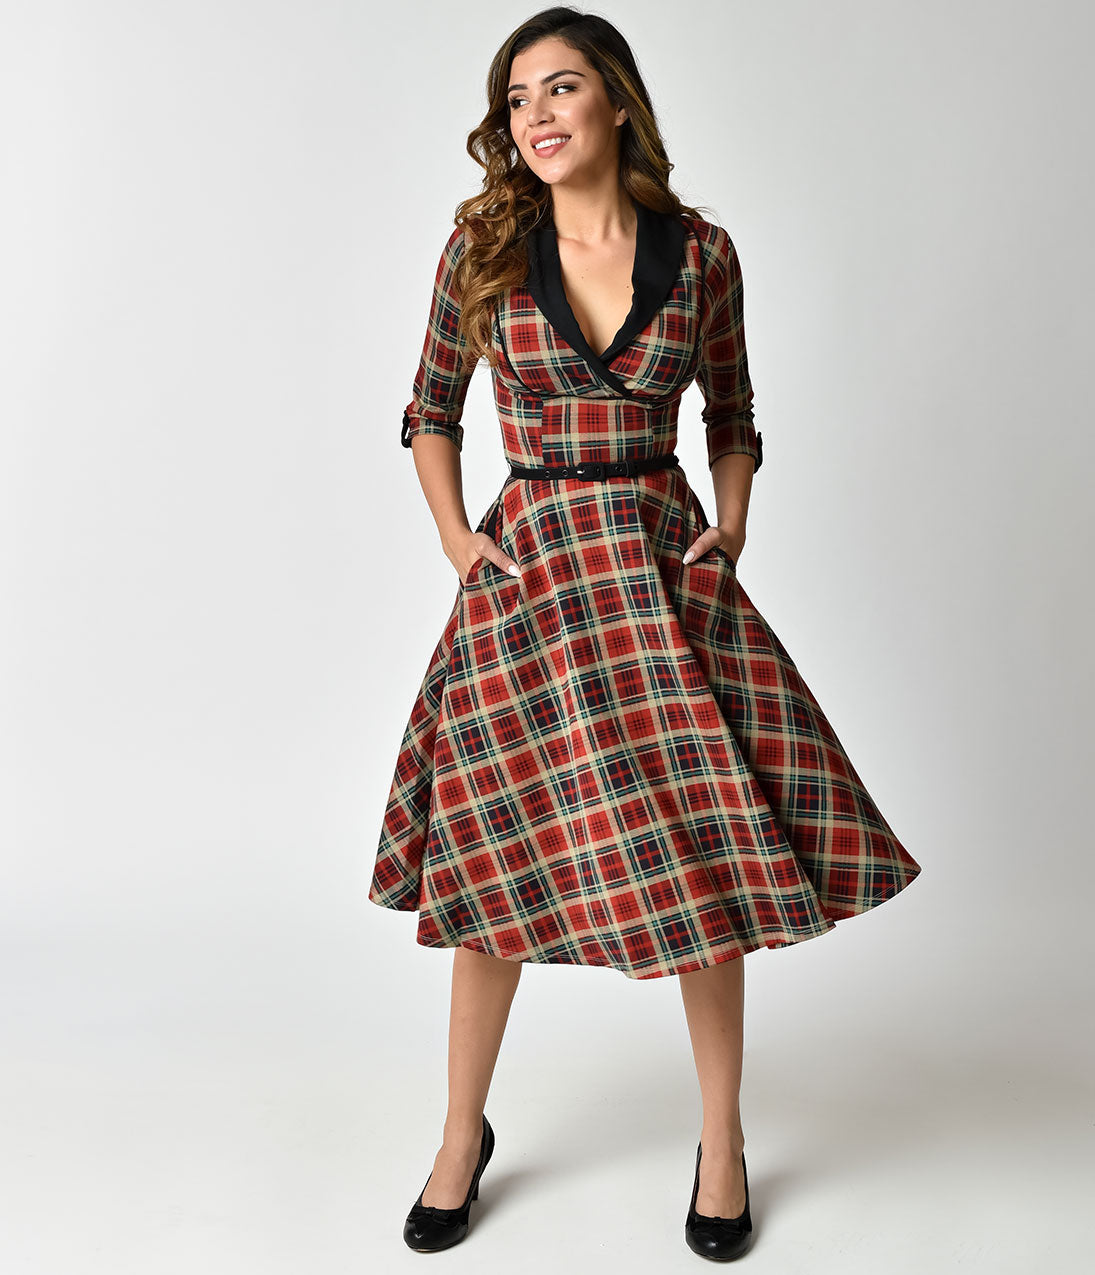 Vintage Christmas Dress | Party Dresses | Night Out Outfits Unique Vintage 1950S Style Red Plaid Three-Quarter Sleeve Trudy Swing Dress $98.00 AT vintagedancer.com